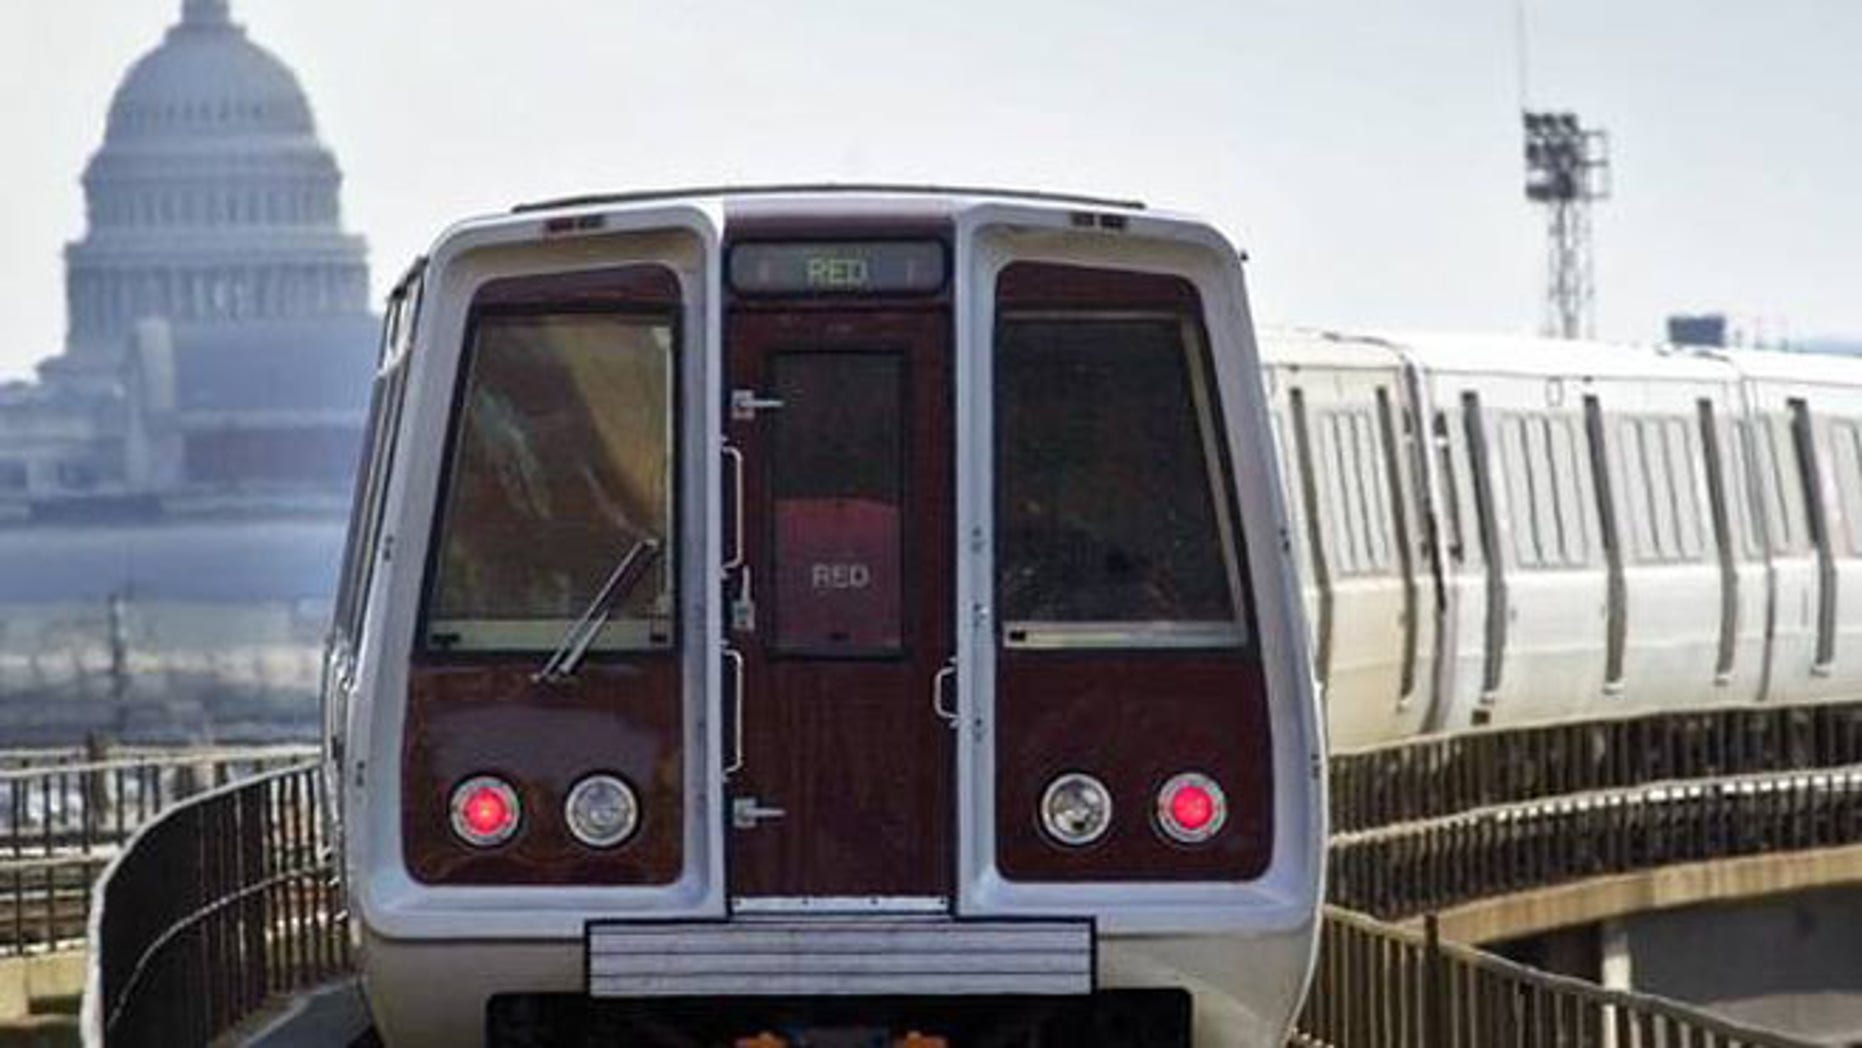 Shown here is a Red Line train on the D.C. Metro.